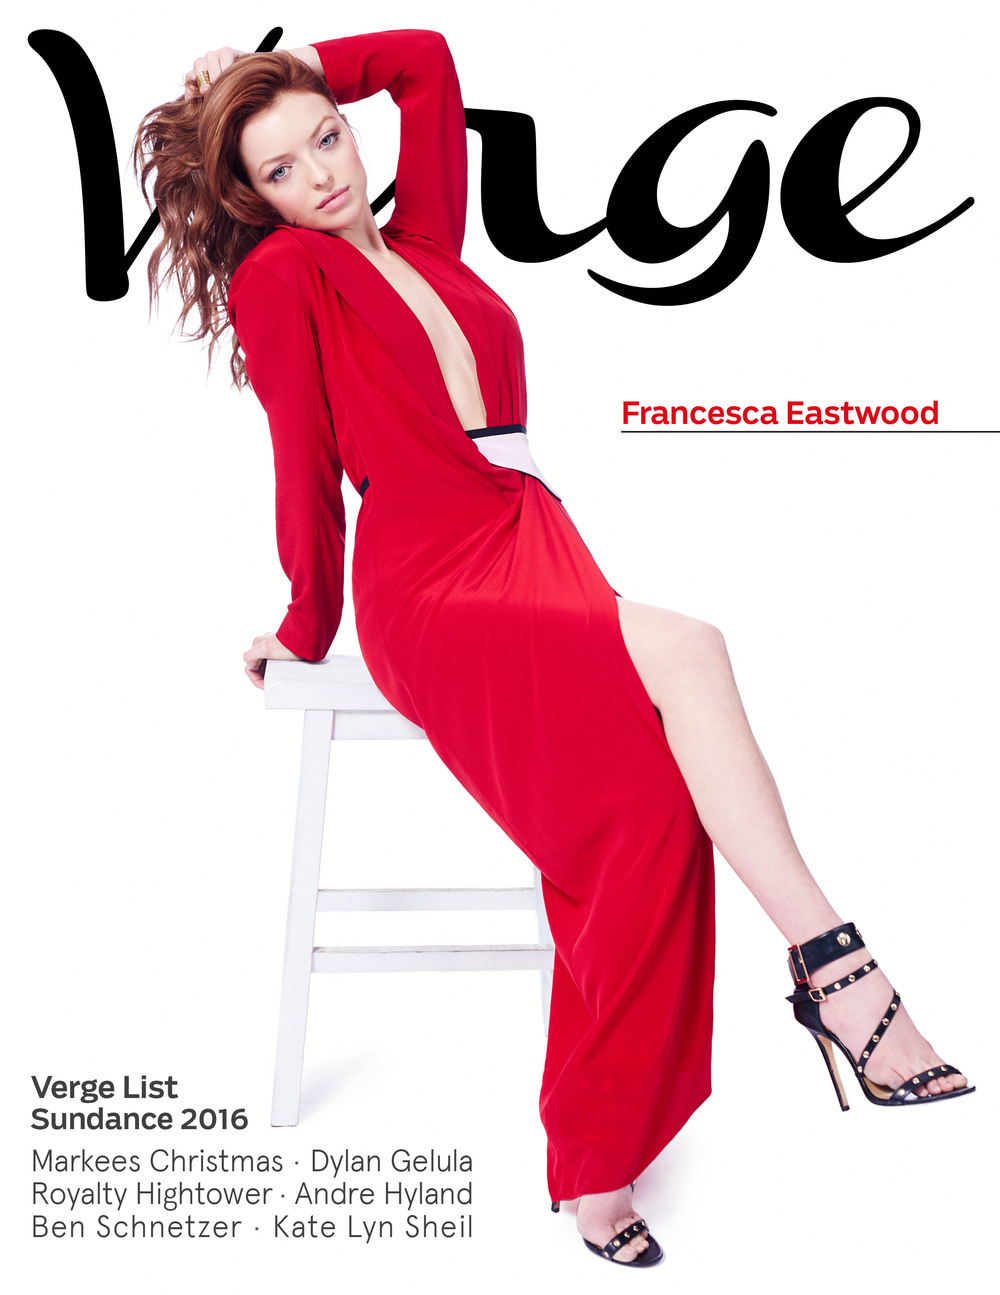 Francesca Eastwood  Verge Cover by Jeff Vespa